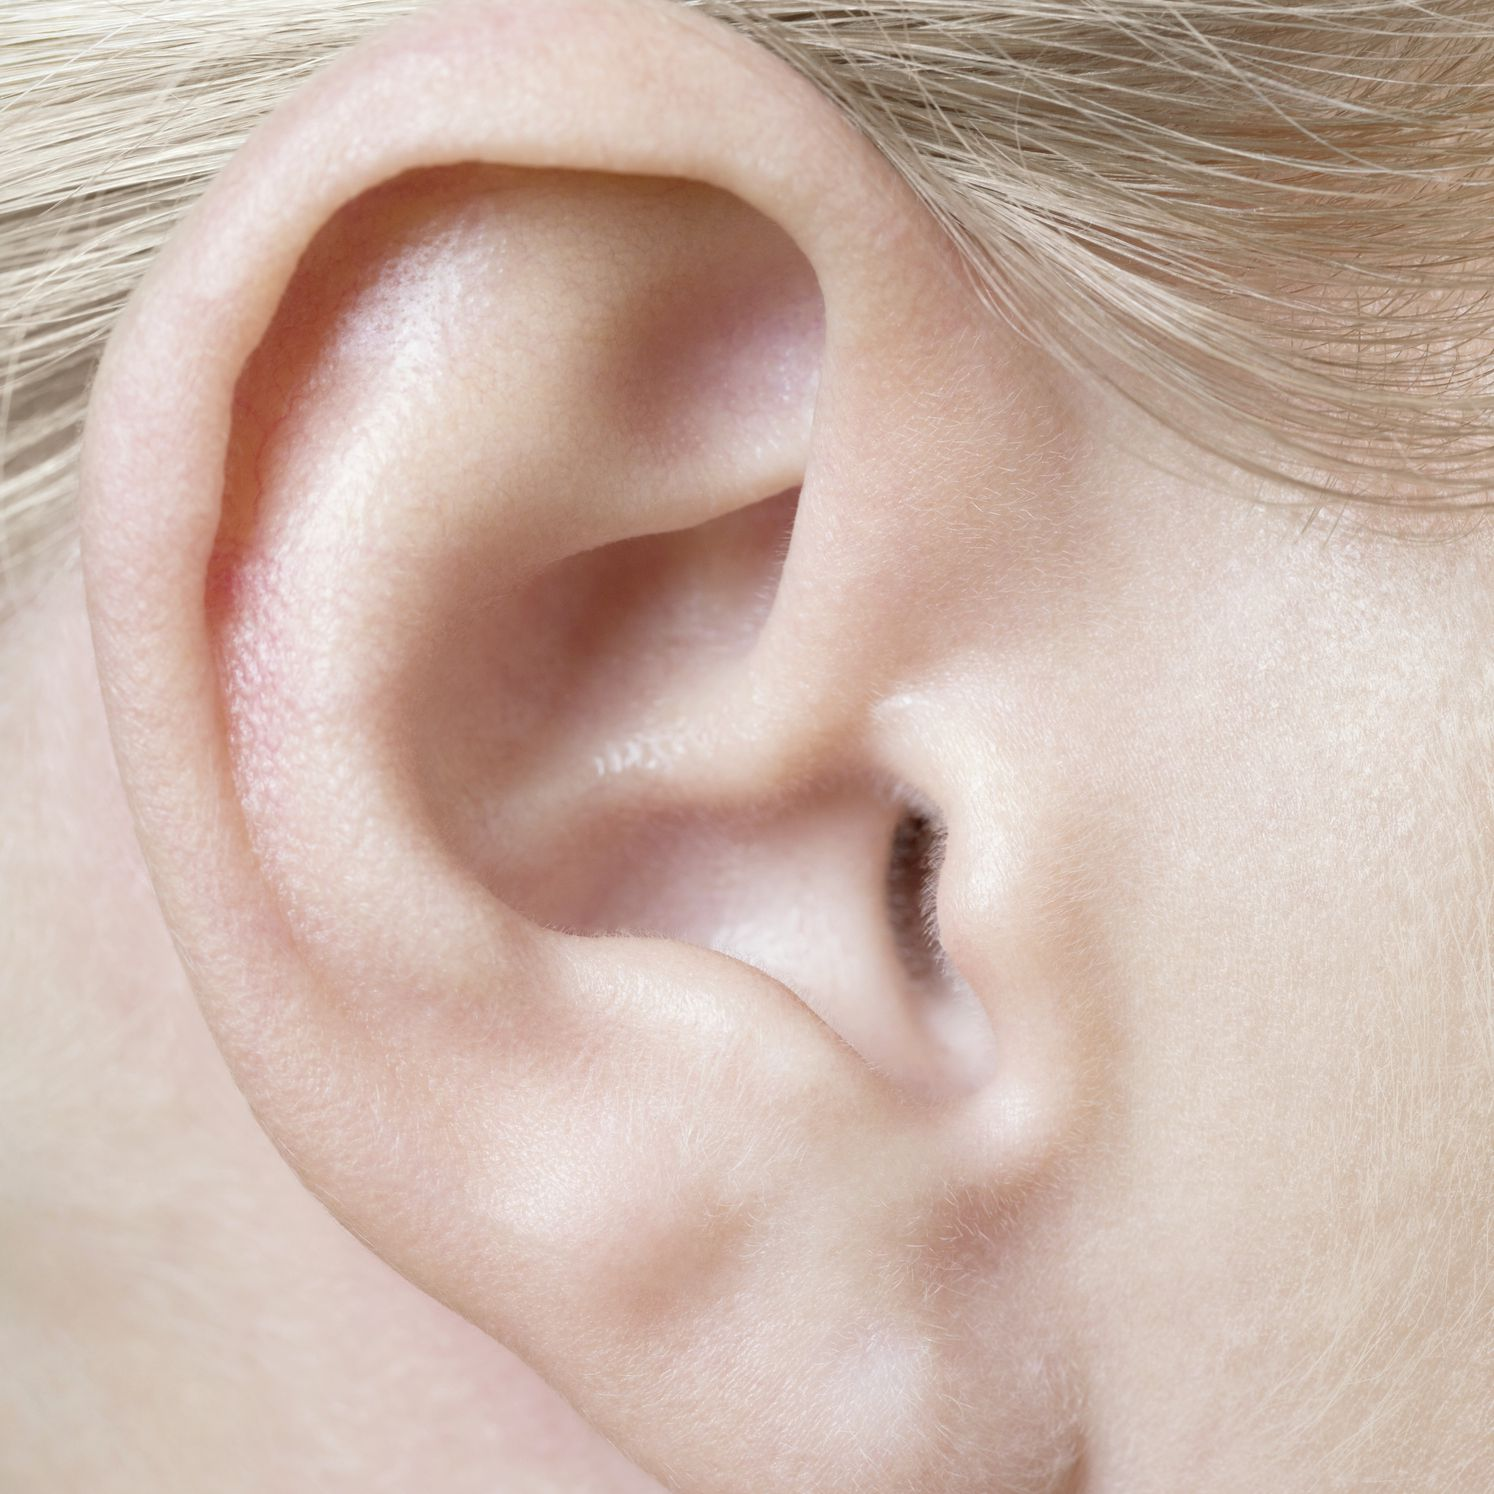 Ear Hair Removal Methods And Tips